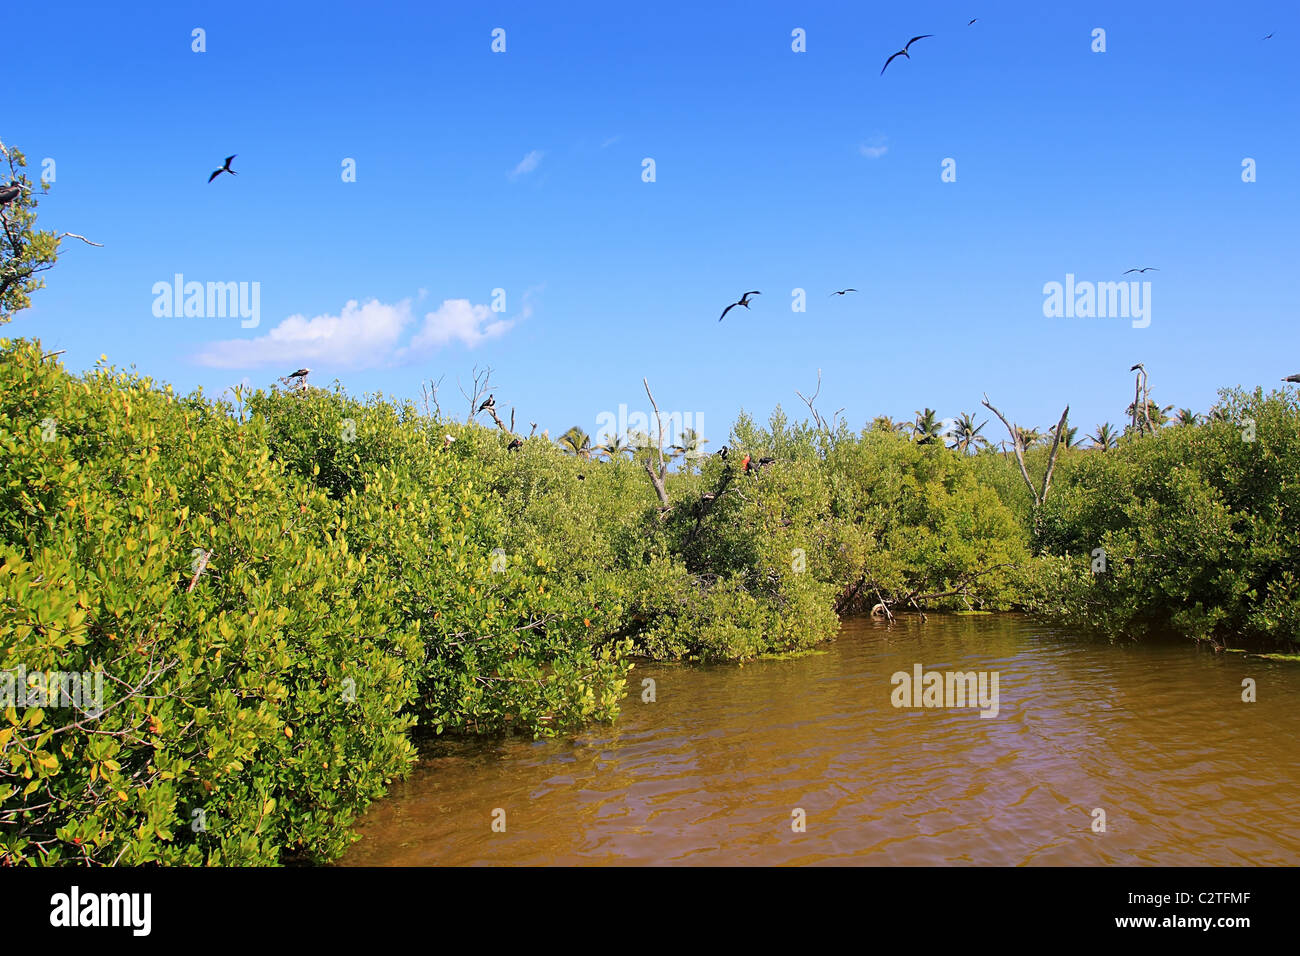 frigate bird reproduction in Contoy island mangroves Quintana Roo - Stock Image